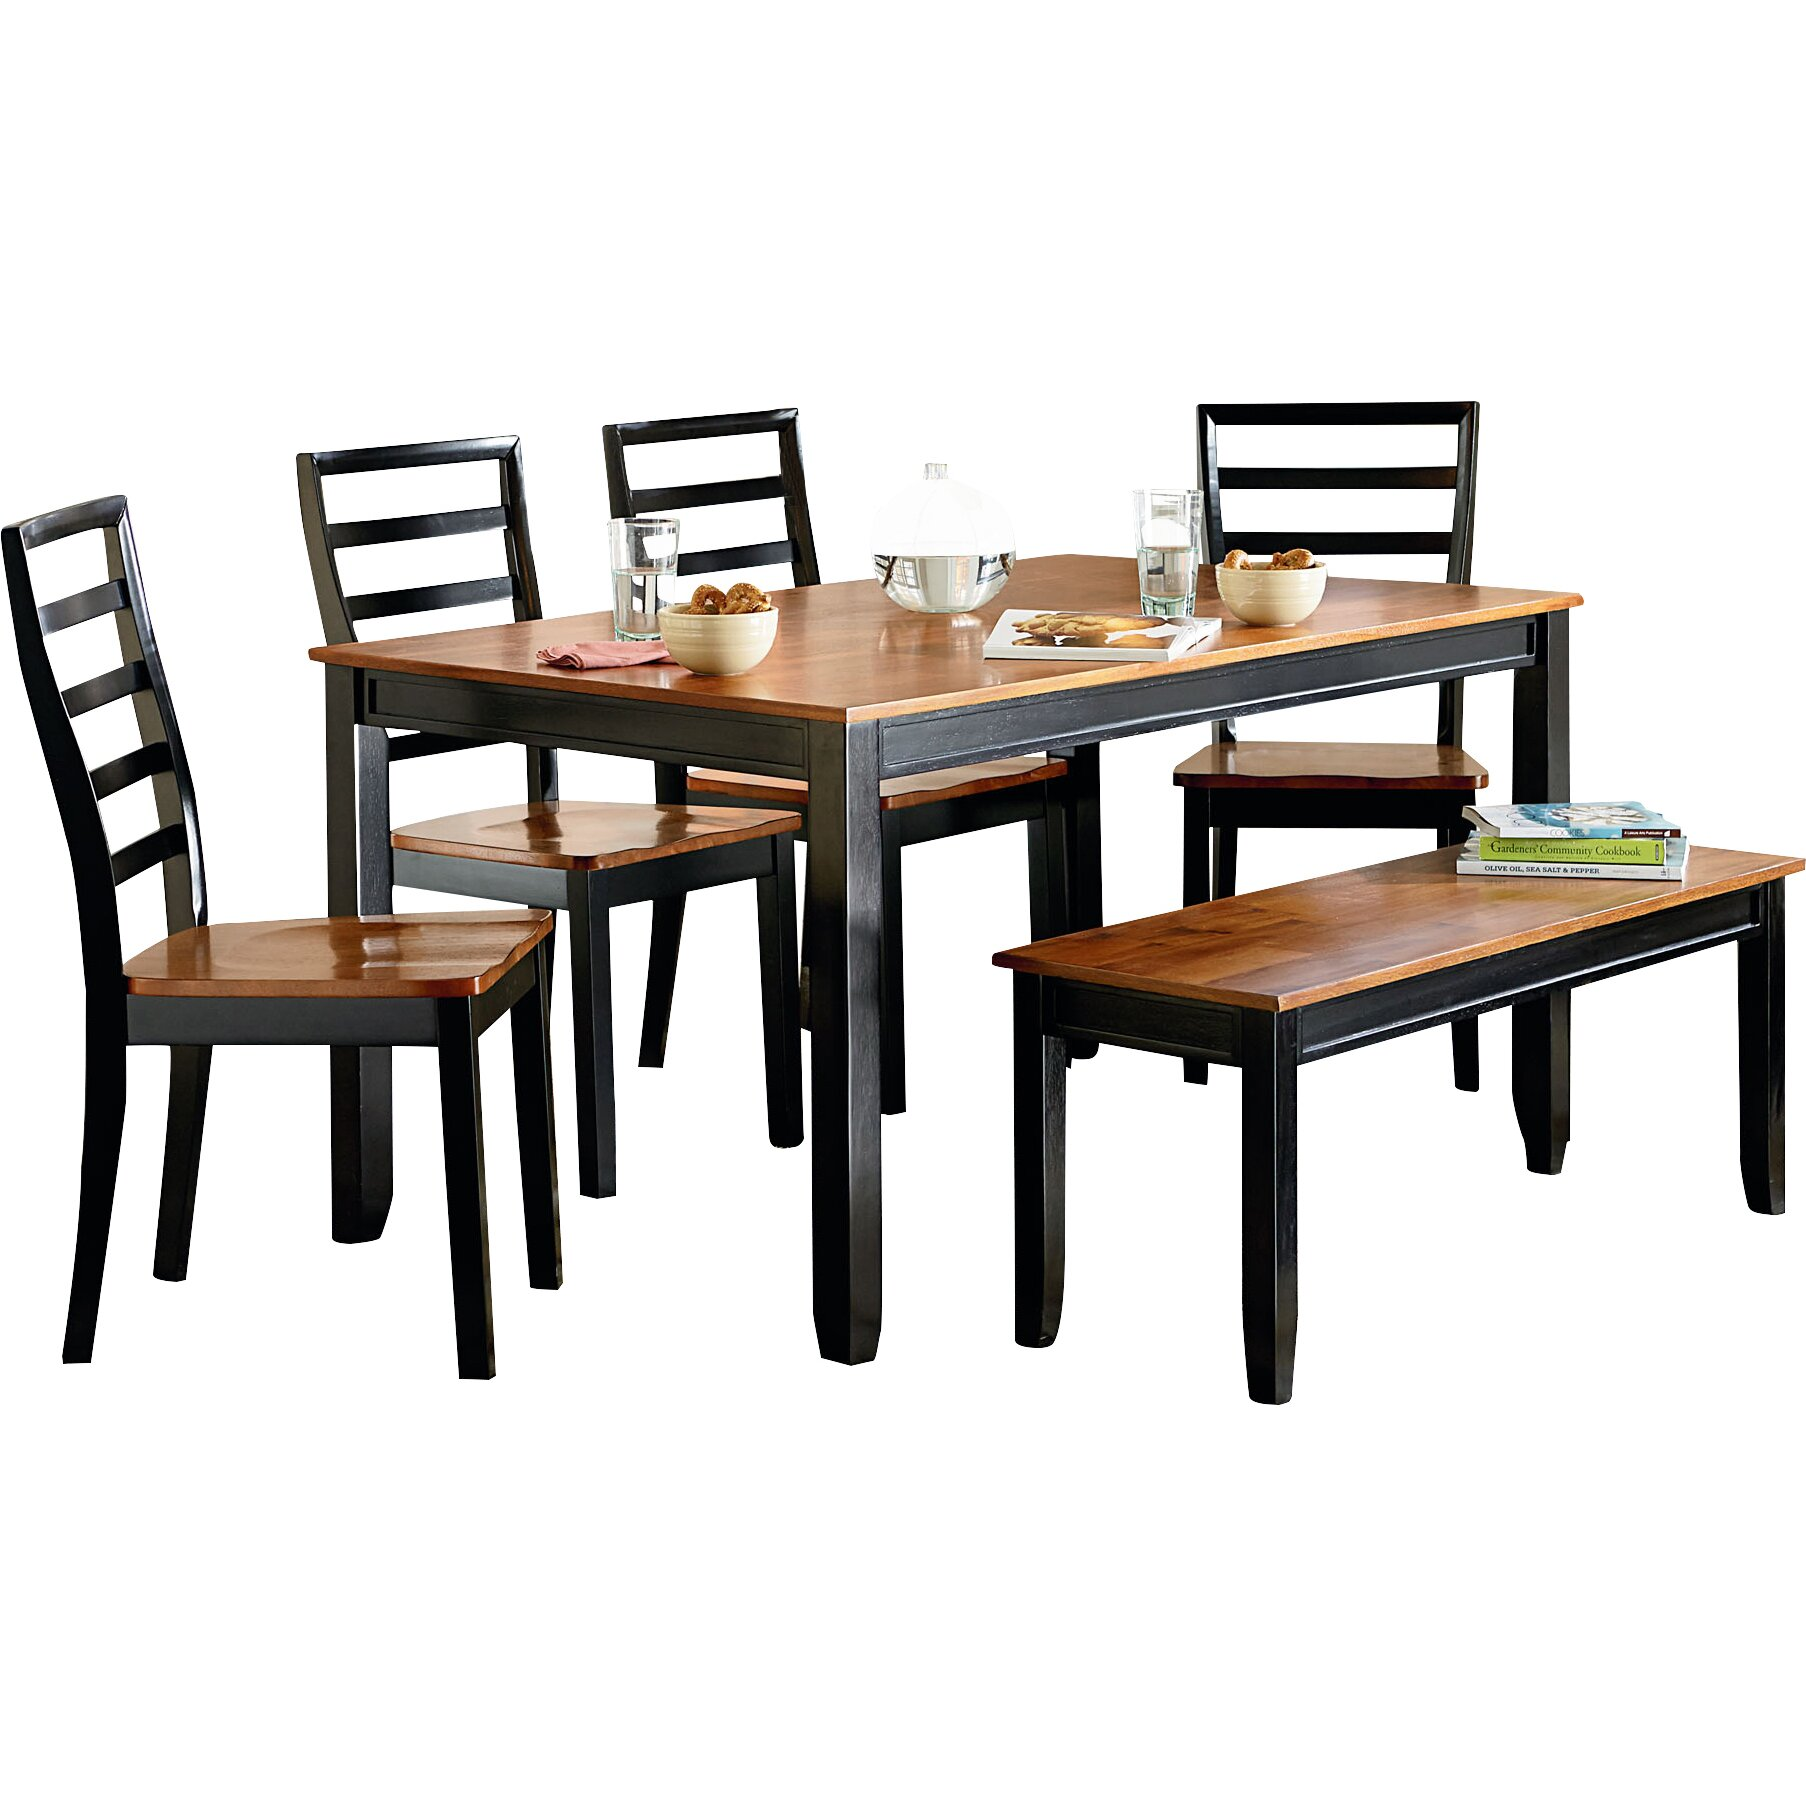 Standard furniture lexford 5 piece dining set reviews for Signoraware organise your kitchen set 8 pieces